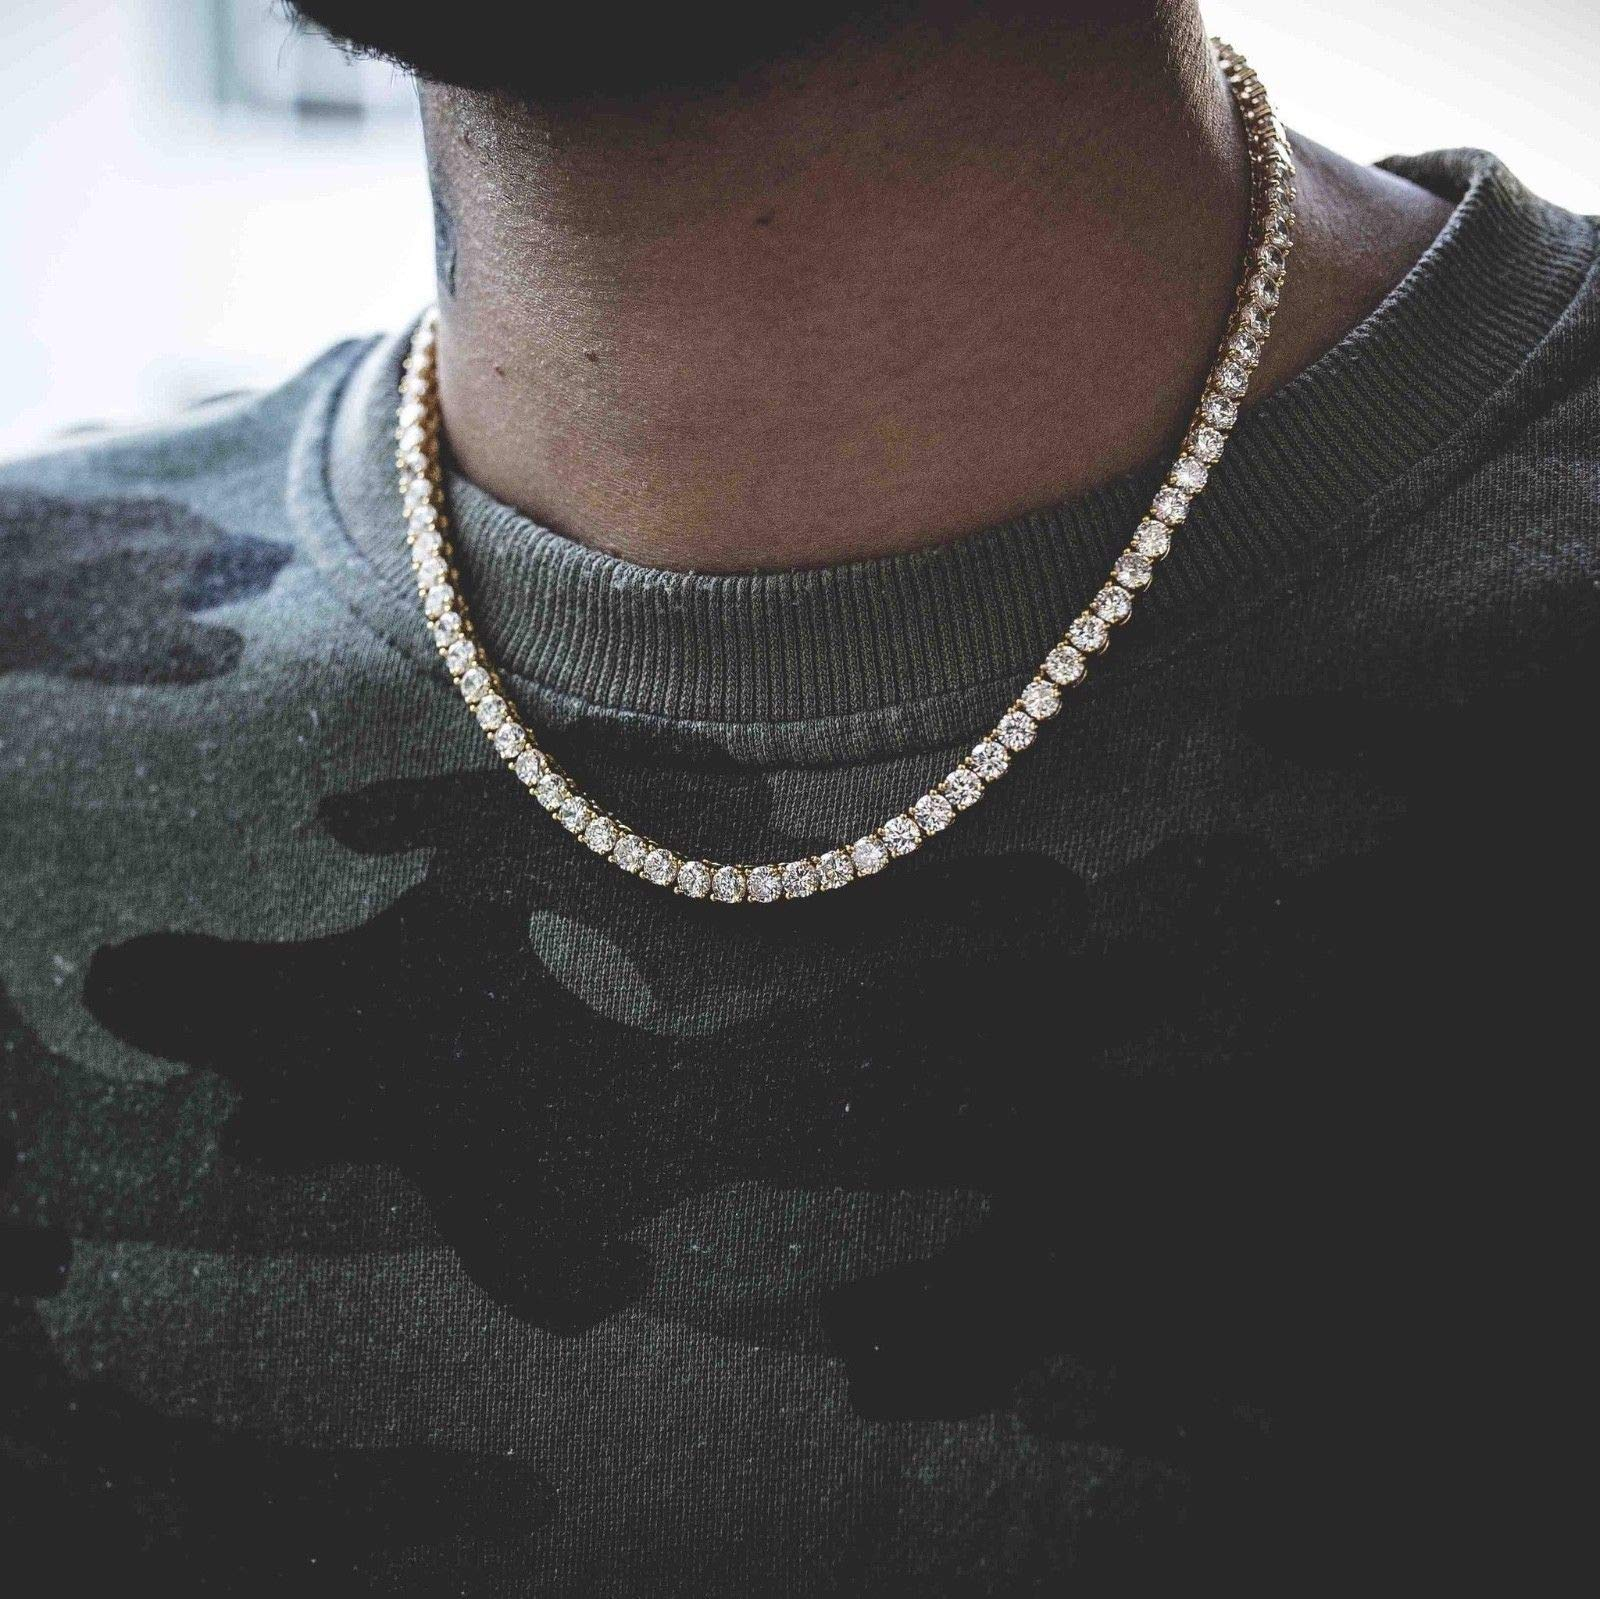 Harlembling Real Solid 925 Silver Men's Tennis Chain - 14k Gold Plated Or Natural Silver - 16-30'' - 3mm 4mm 5mm 6mm - Iced Out Hip Hop CZ Men's One Row Chain (18, 5mm Natural Silver) by Harlembling (Image #6)